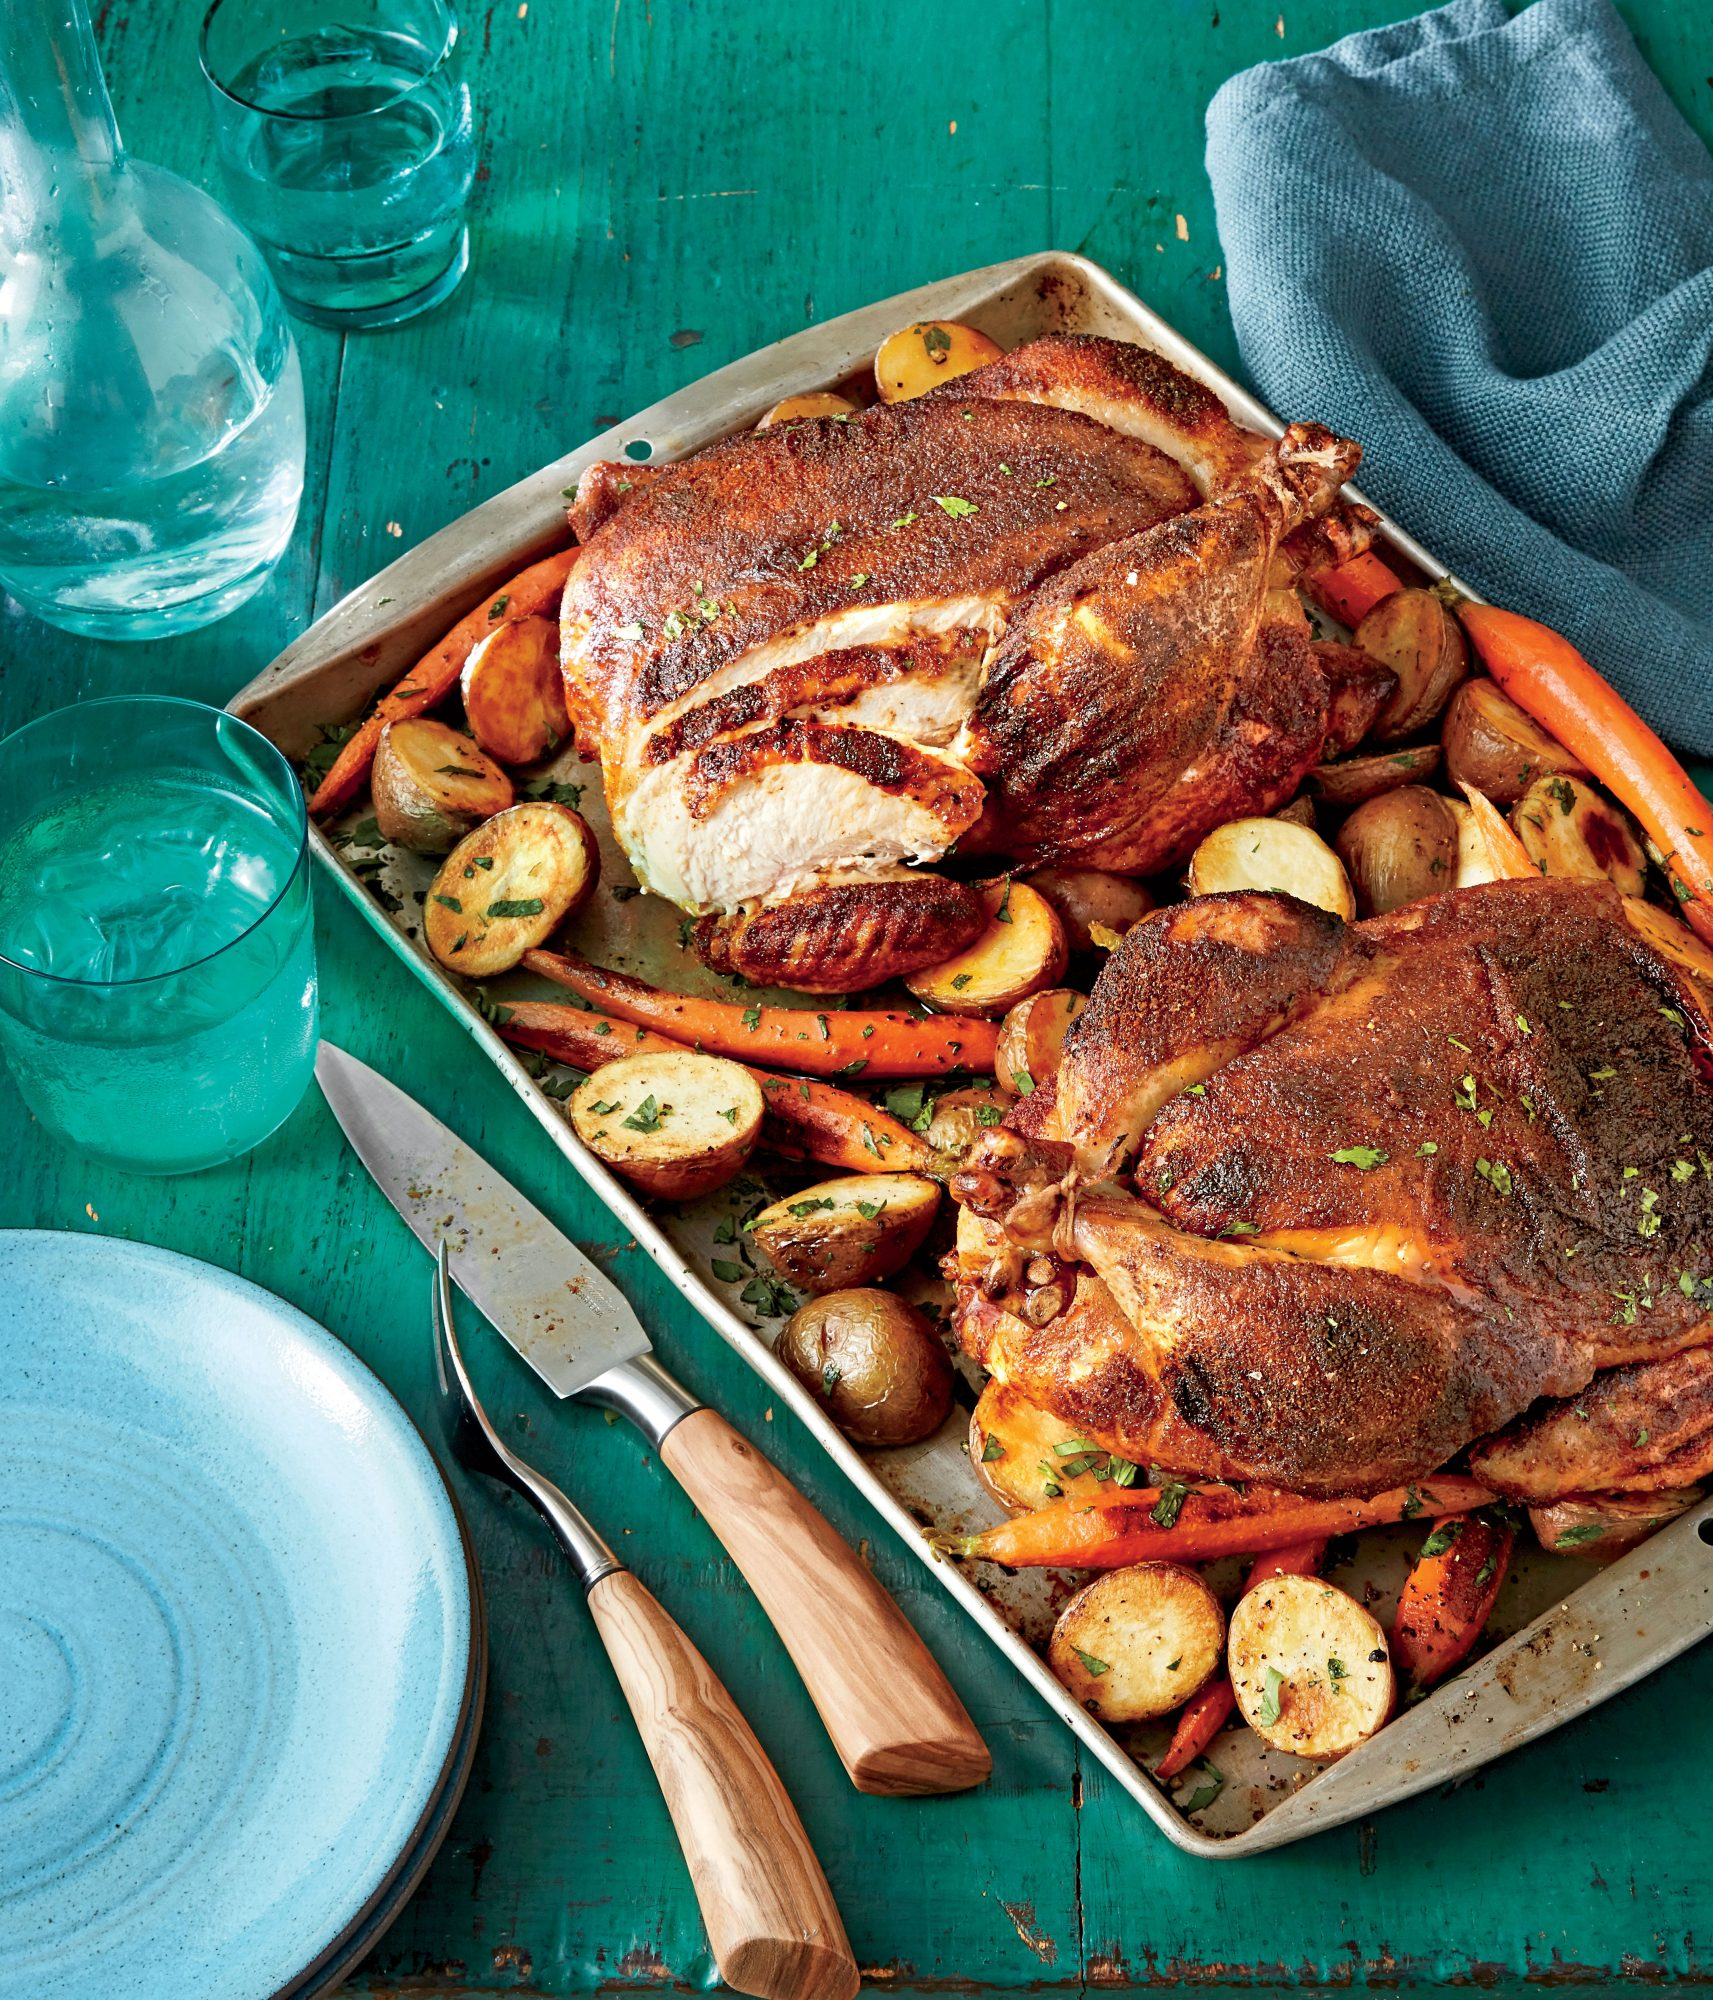 BBQ Rub Roasted Chickens with Potatoes and Carrots Recipe Southern Living